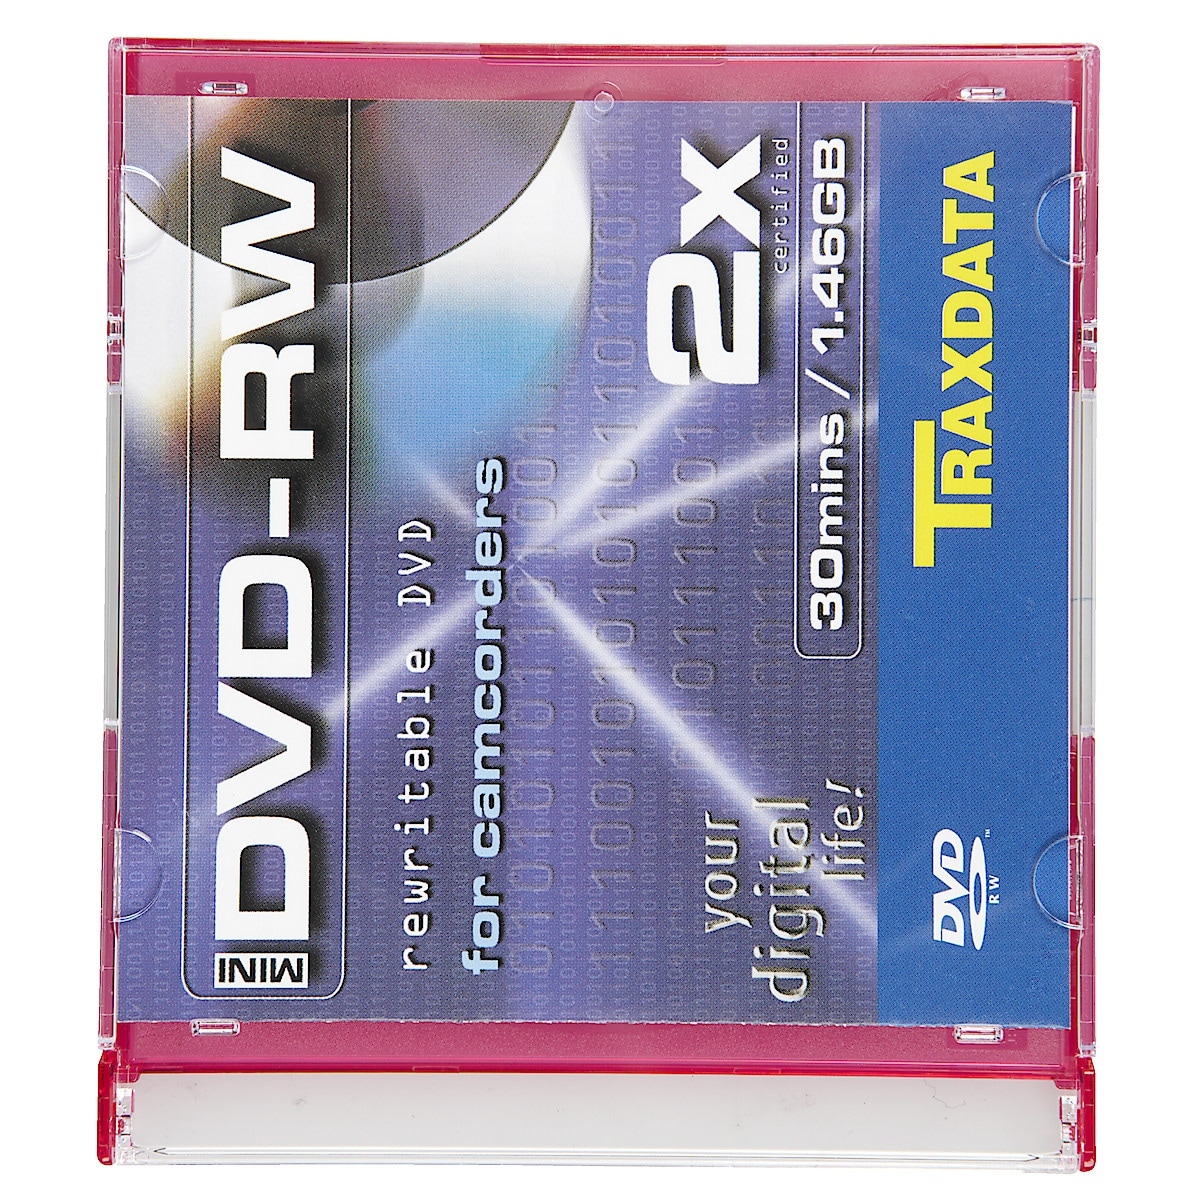 DVD-plate mini, 1.46 GB